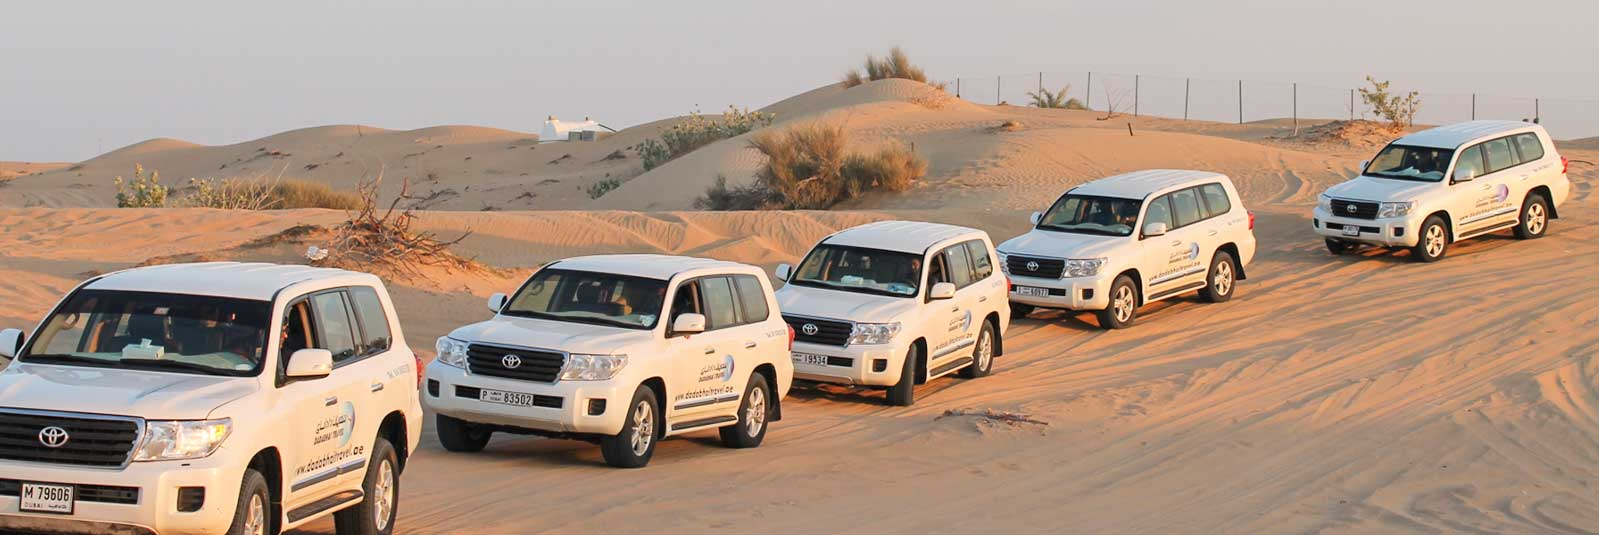 Evening Desert Safari in Dubai with BBQ Dinner & Hotel Transfers